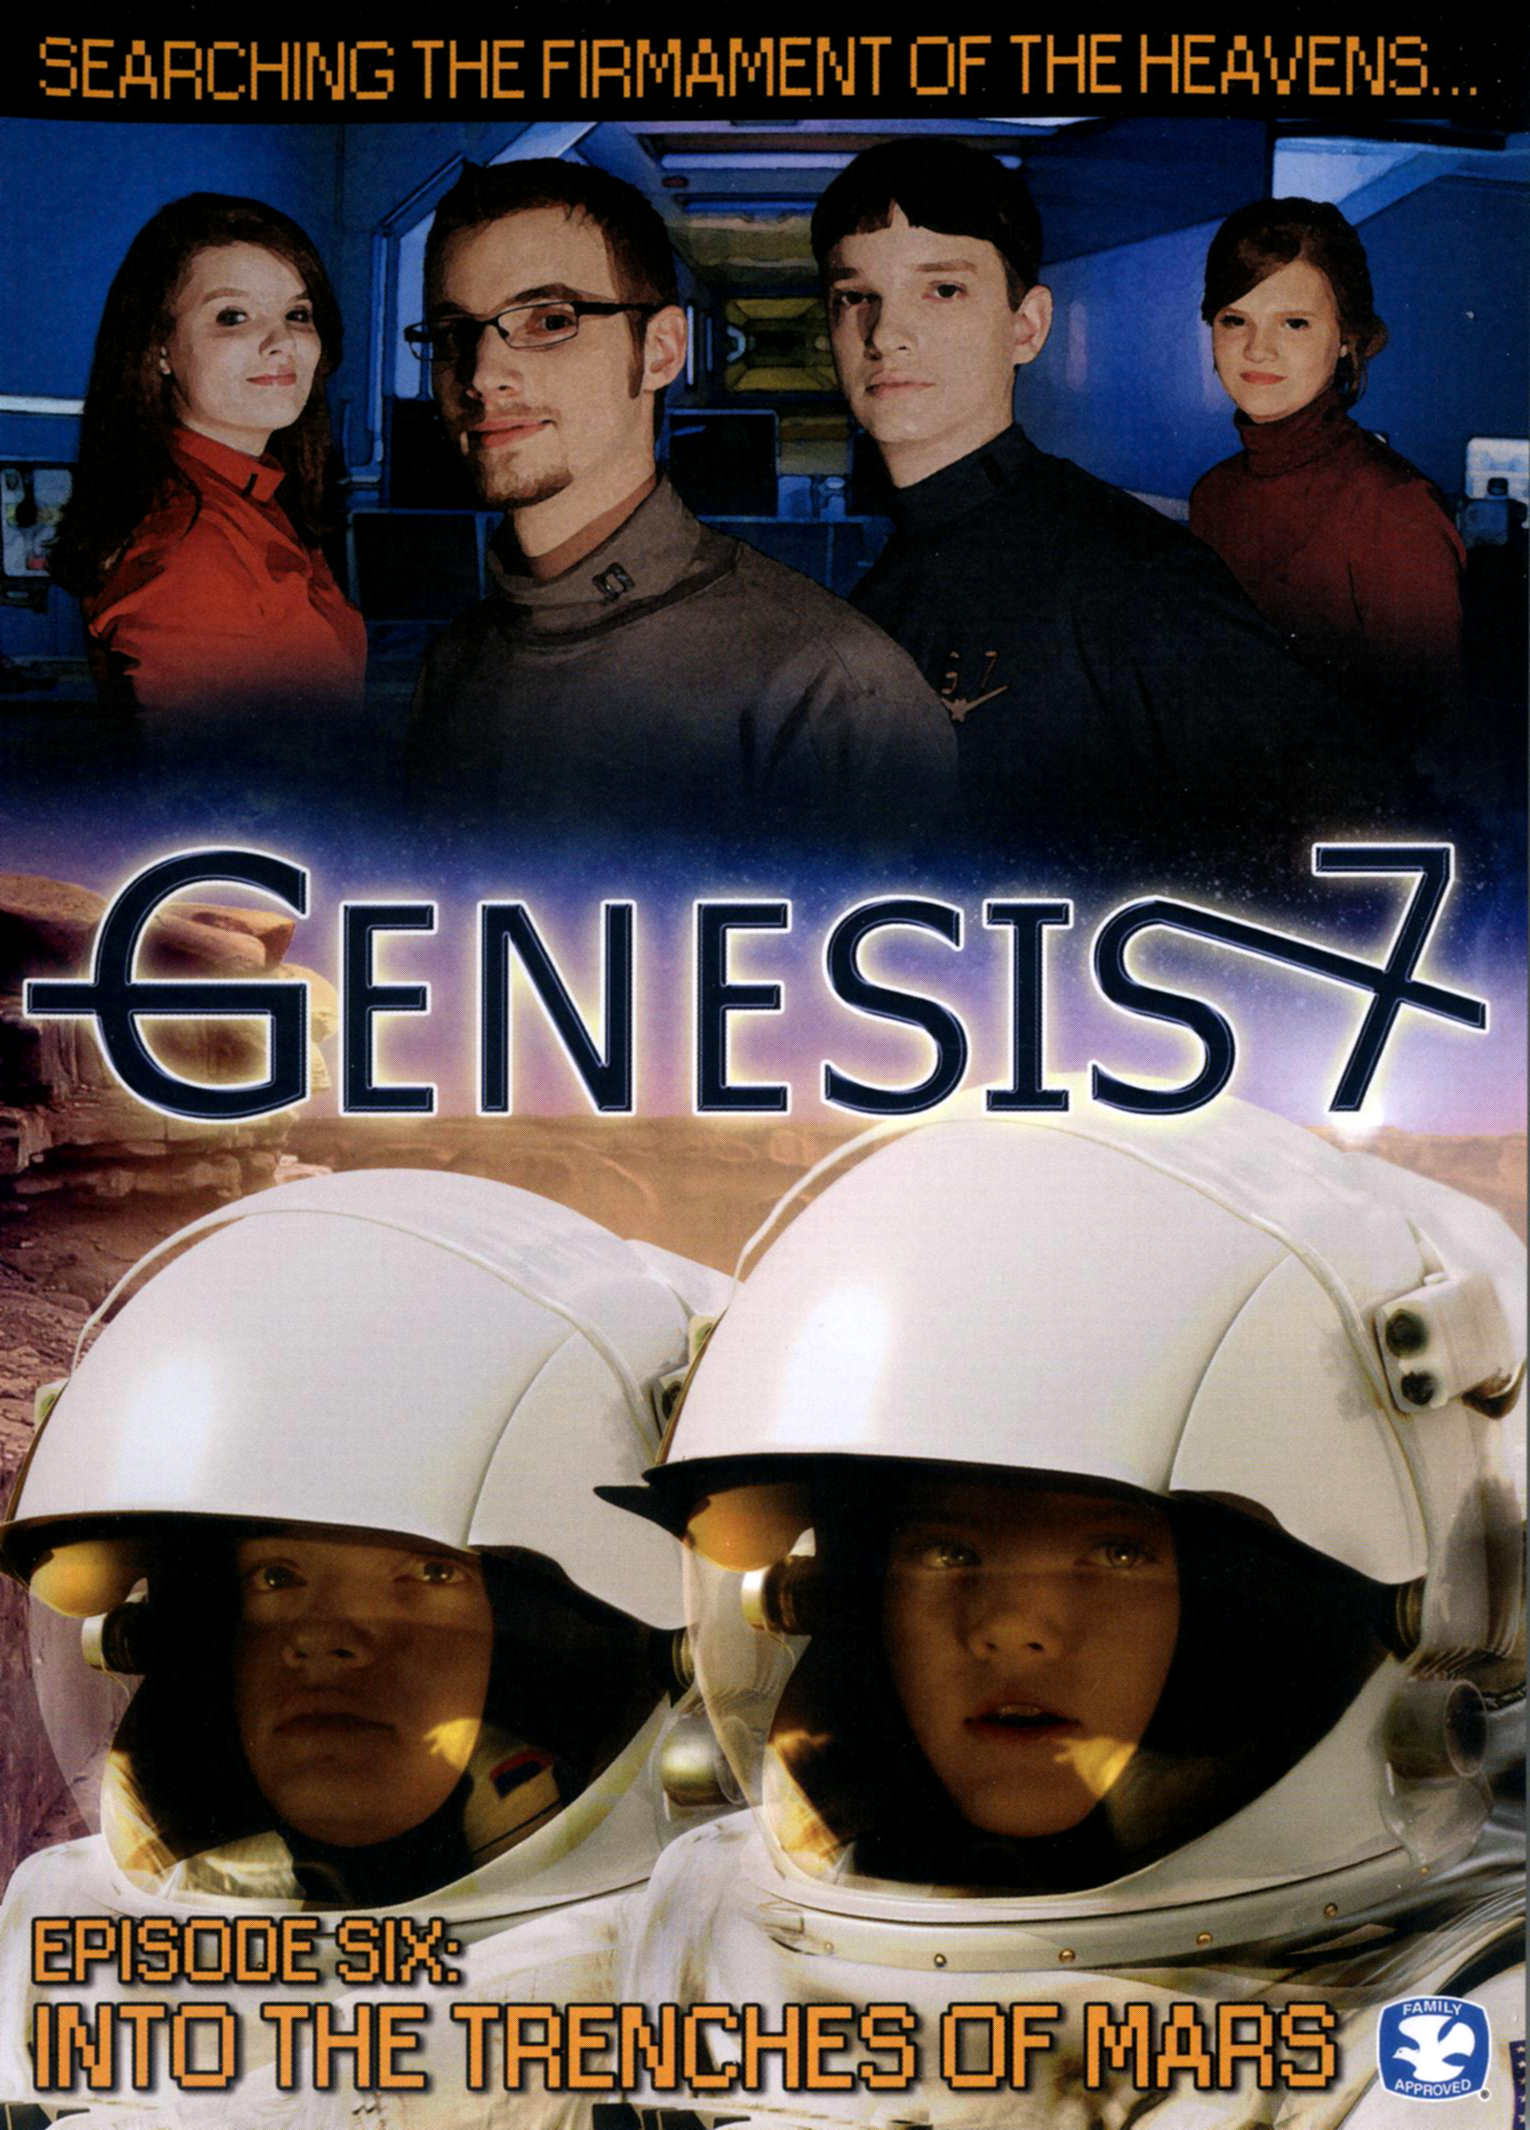 Genesis 7: Episode Six - Into the Trenches of Mars